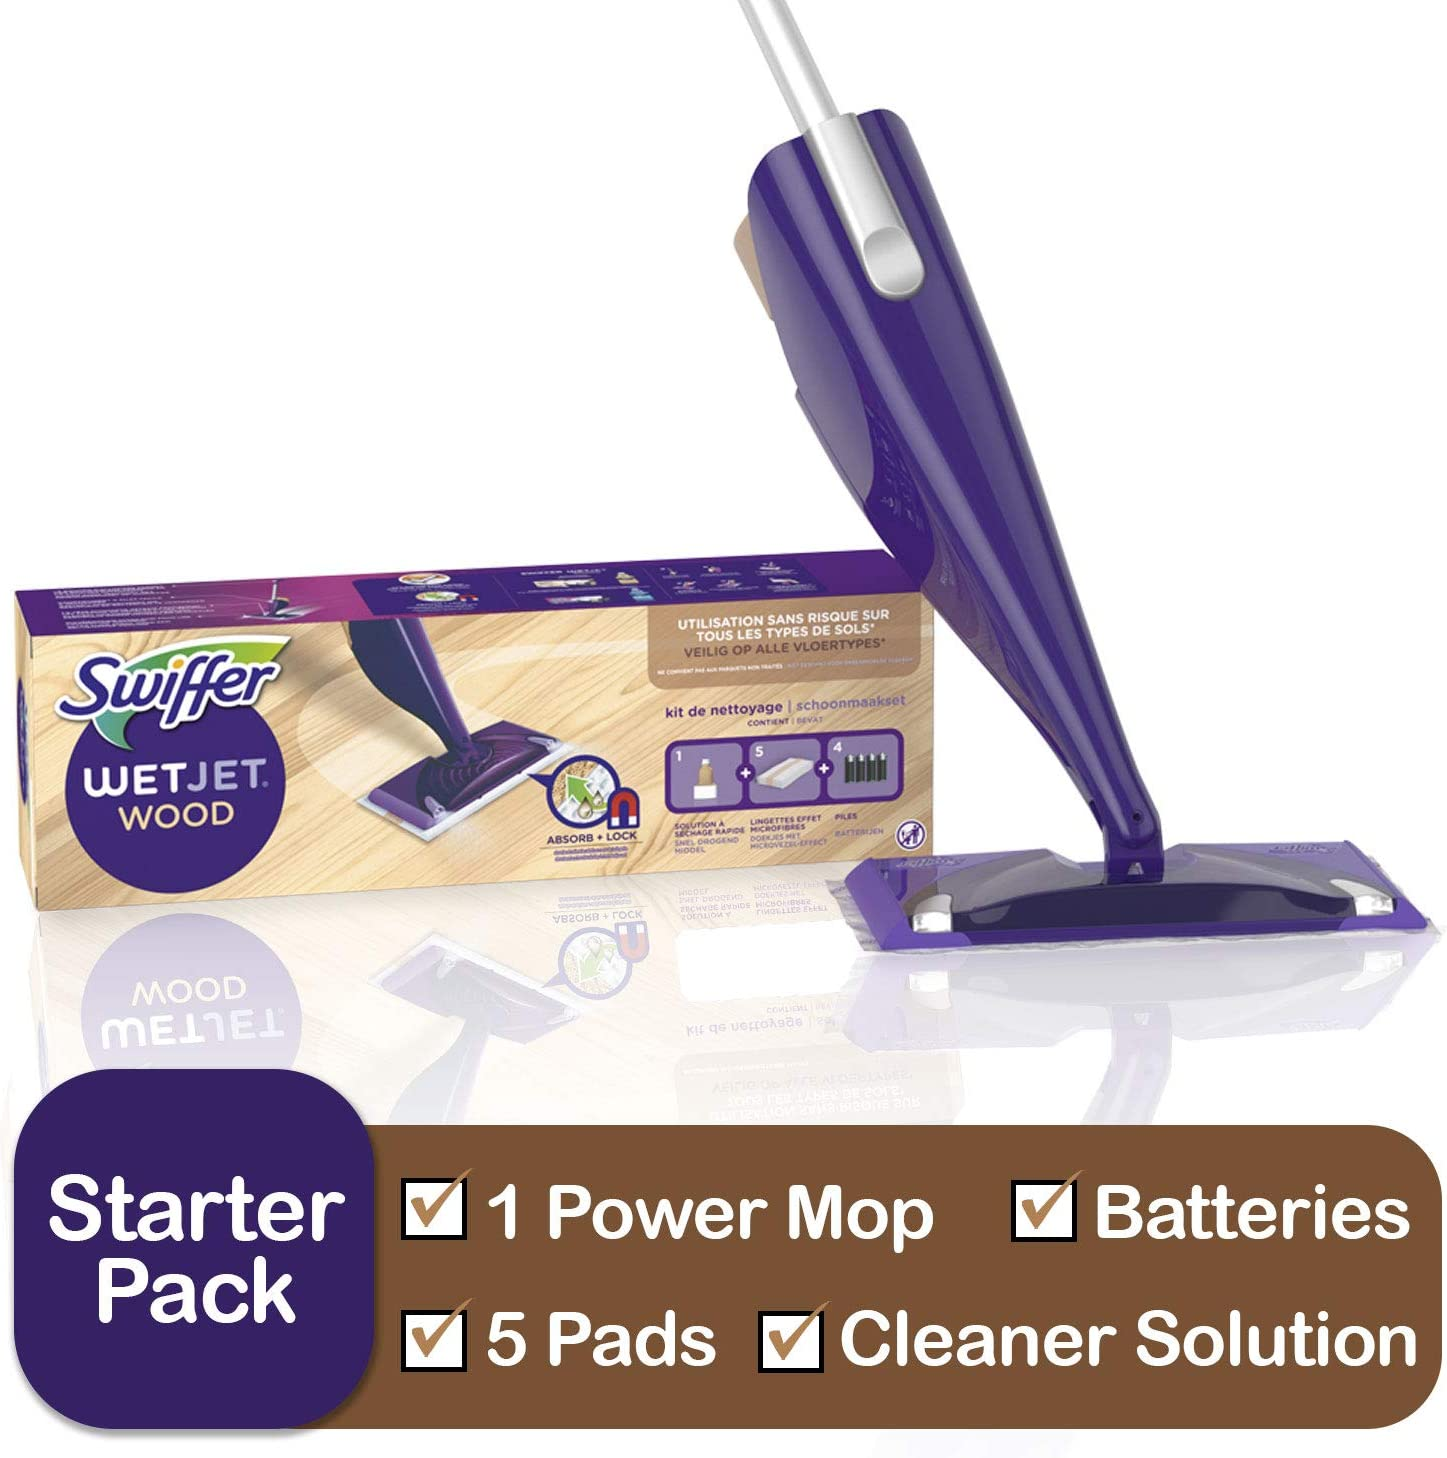 How to Use Swiffer Wet Jet